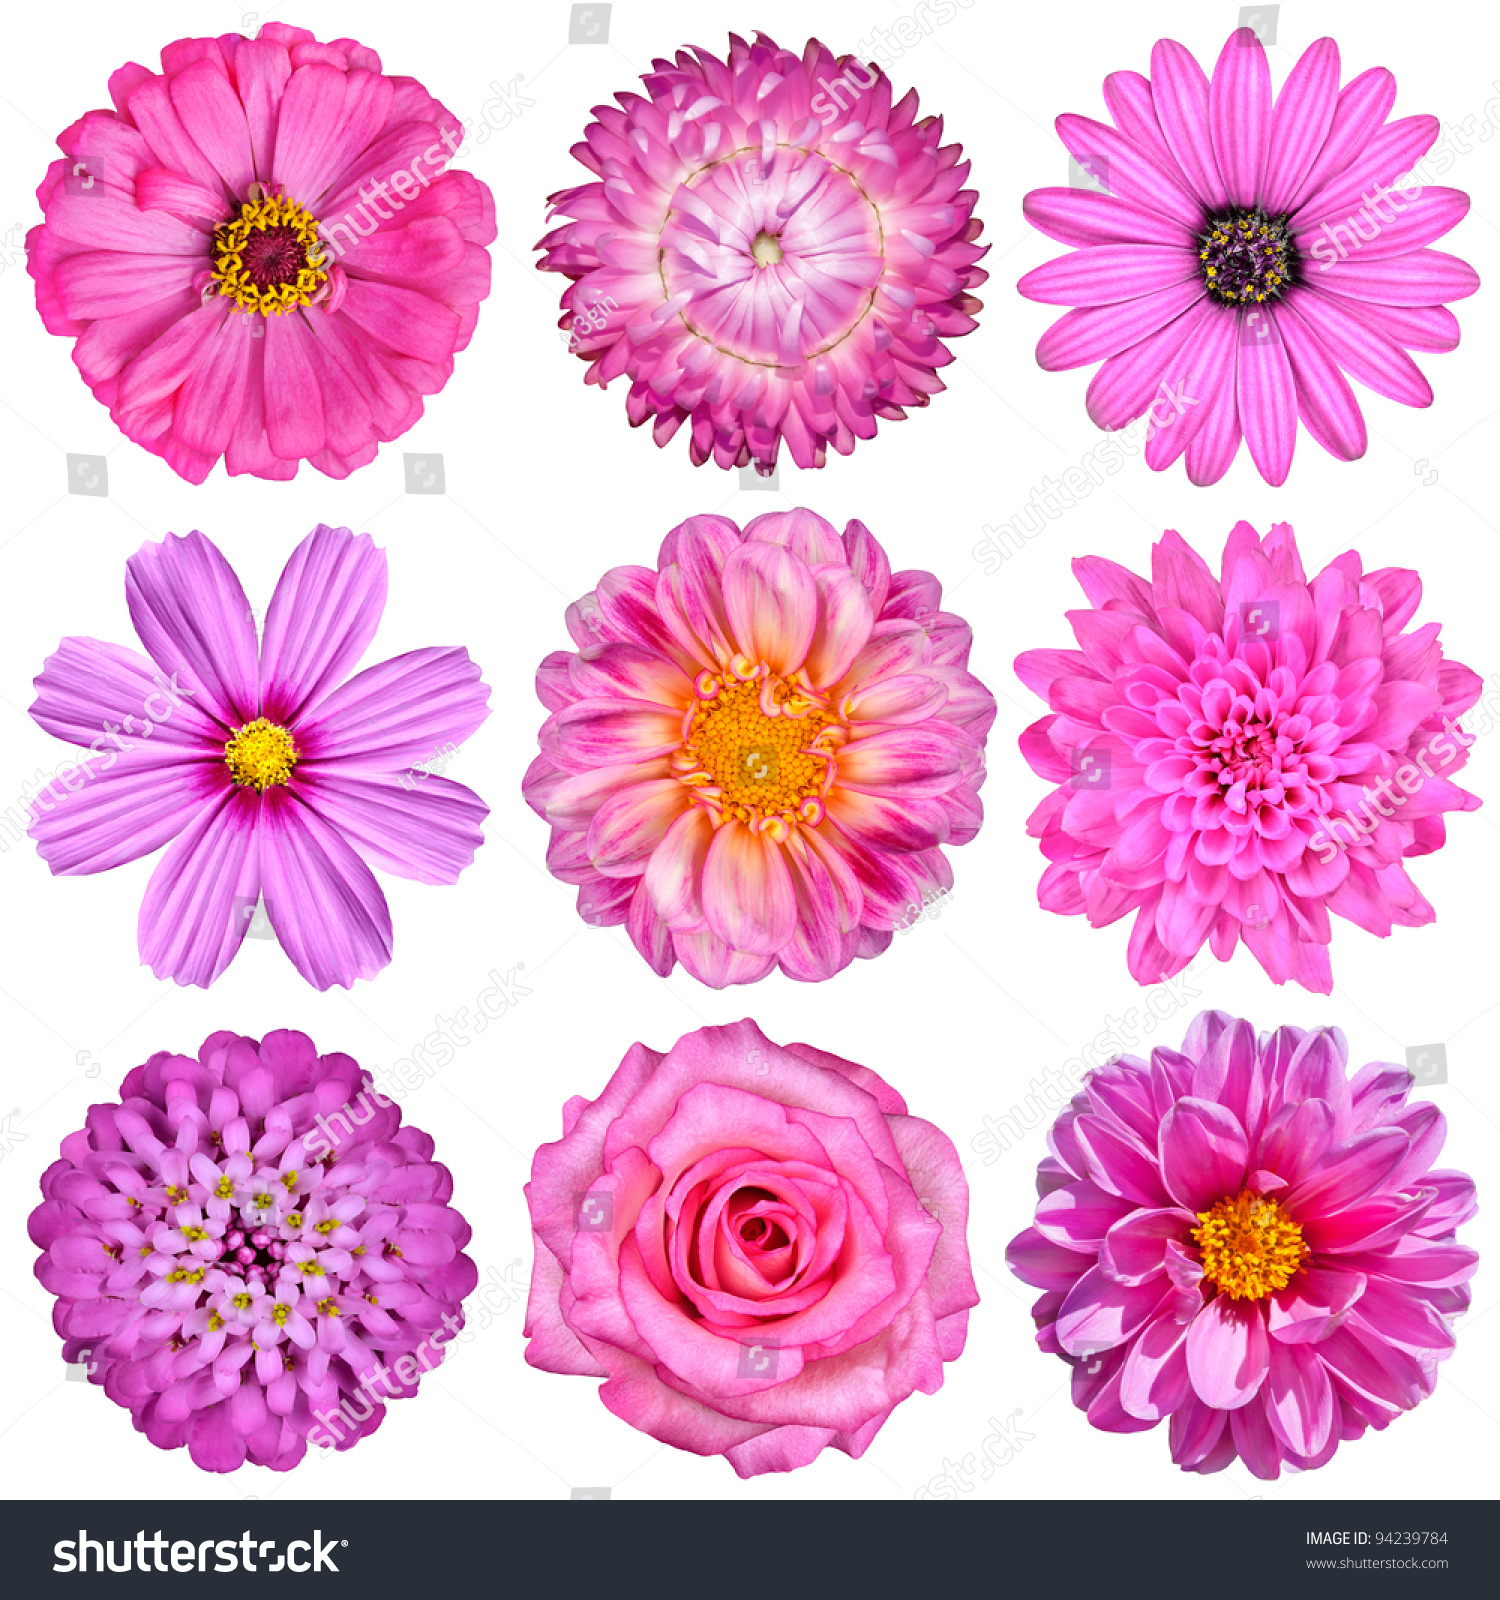 Royalty free selection of pink white flowers 94239784 stock photo selection of pink white flowers isolated on white nine flowers daisy strawflower mightylinksfo